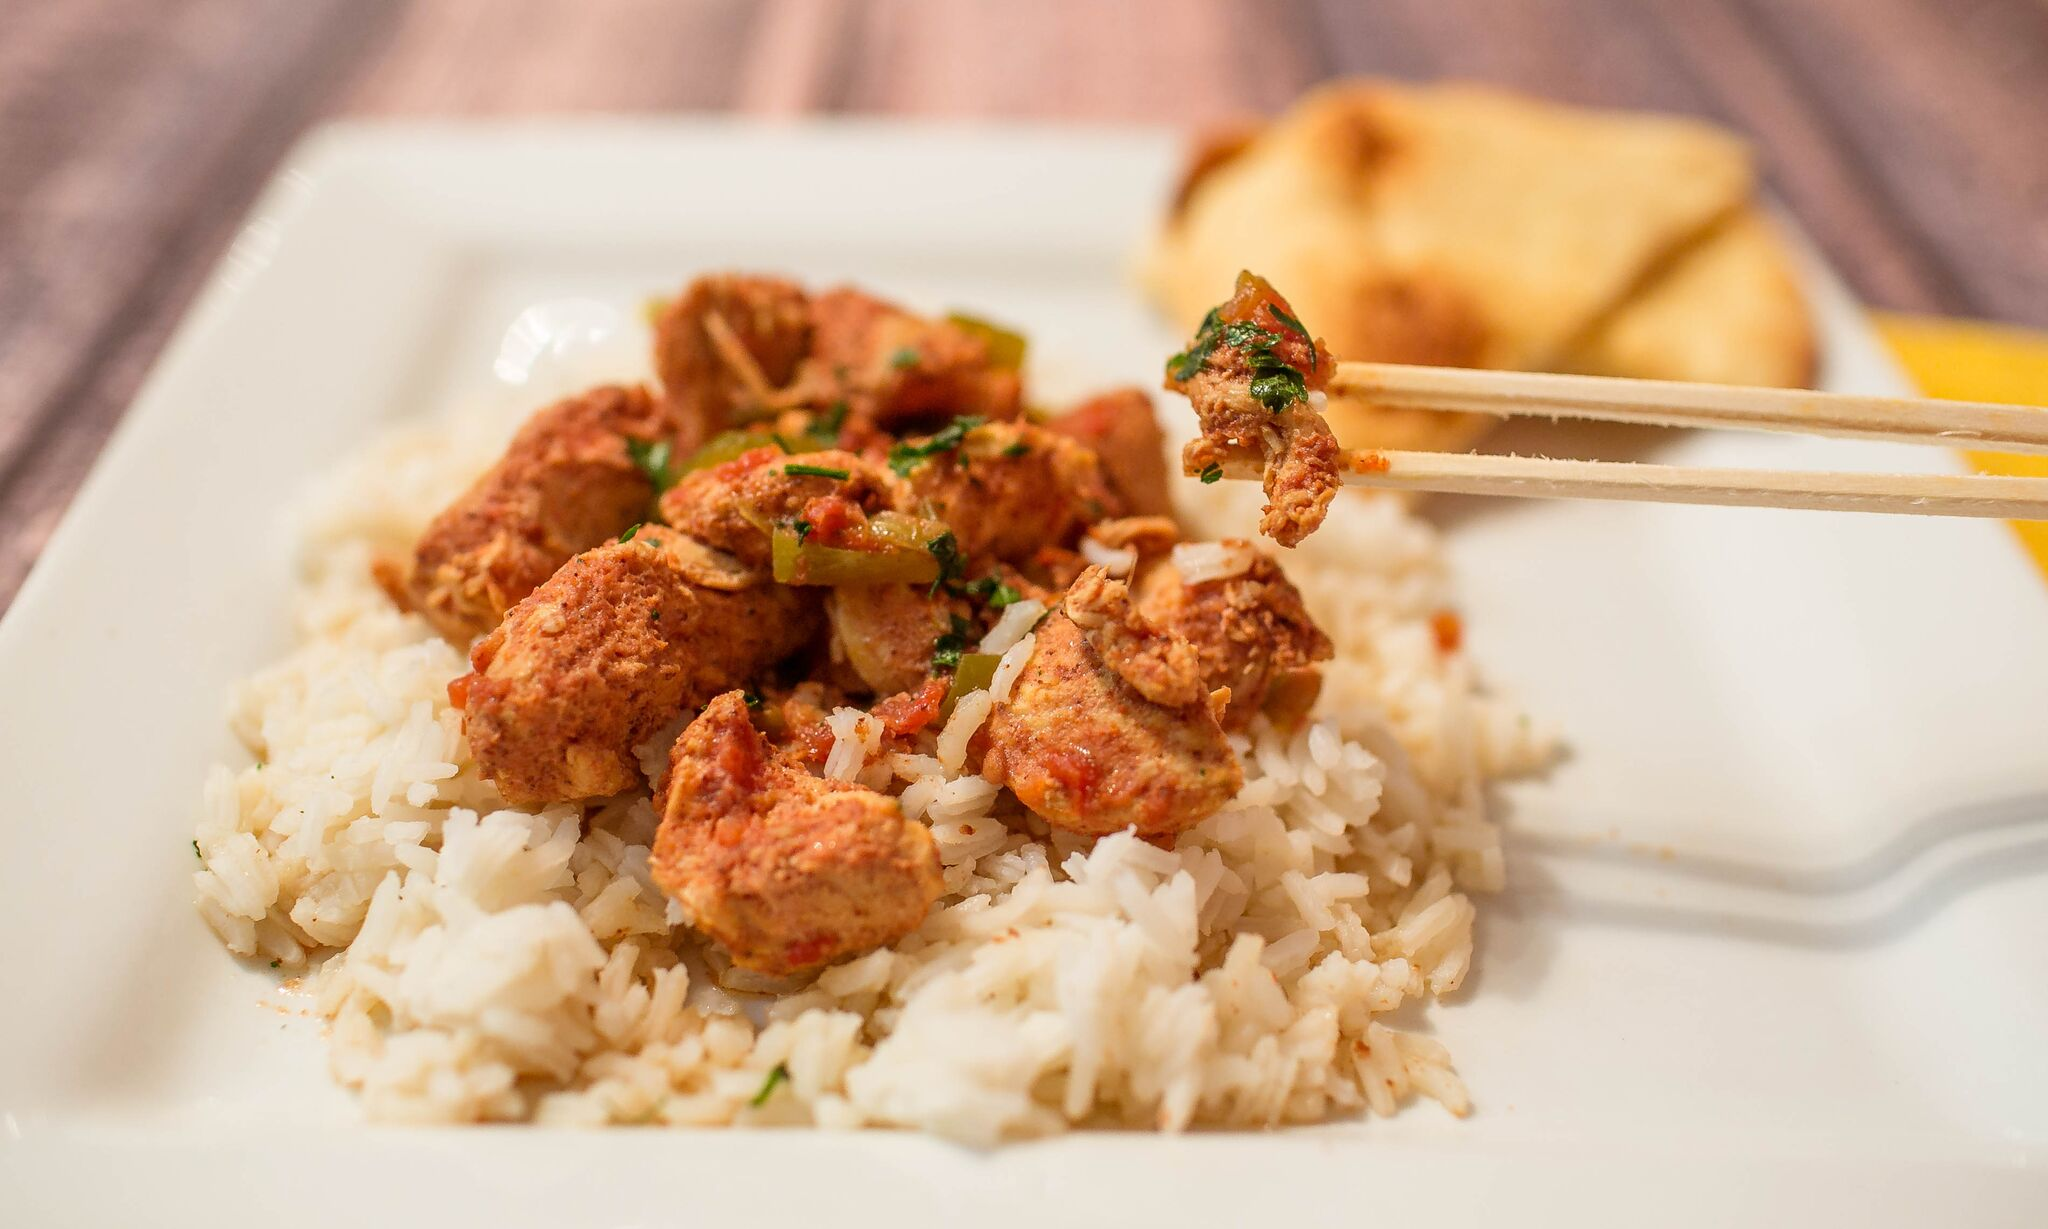 Serve this easy chicken curry over white rice for an easy freezer to crockpot weeknight meal.